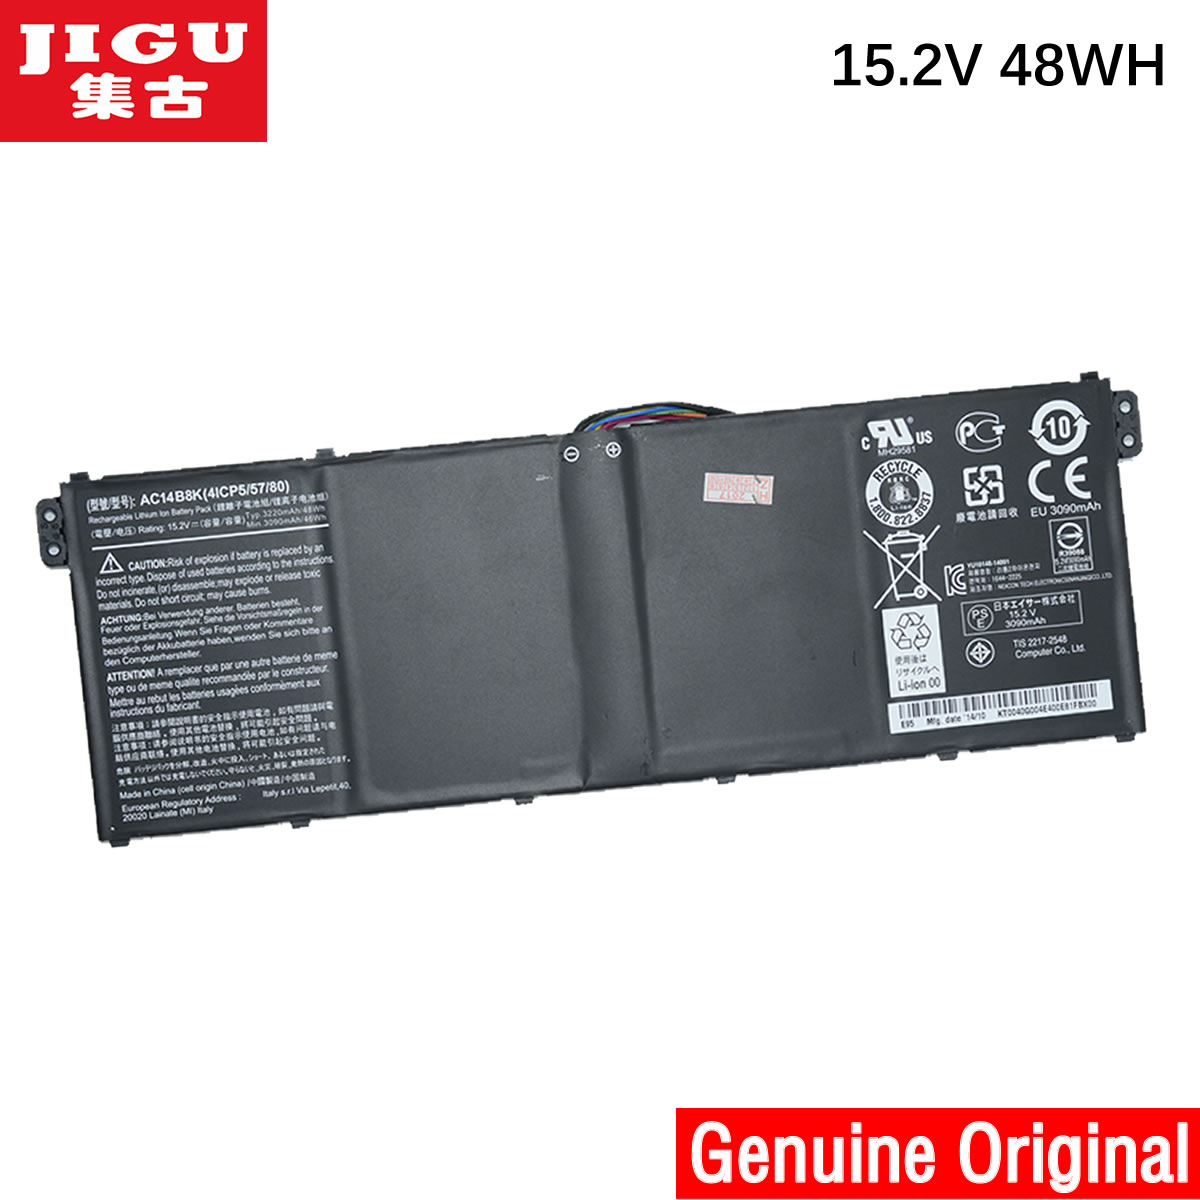 JIGU Original Laptop Battery AC14B8K FOR Acer Aspire E3-111 E3-112 CB3-111 CB5-311 ES1-511 ES1-512 E5-771G V3-111 V3-371 ES1-711